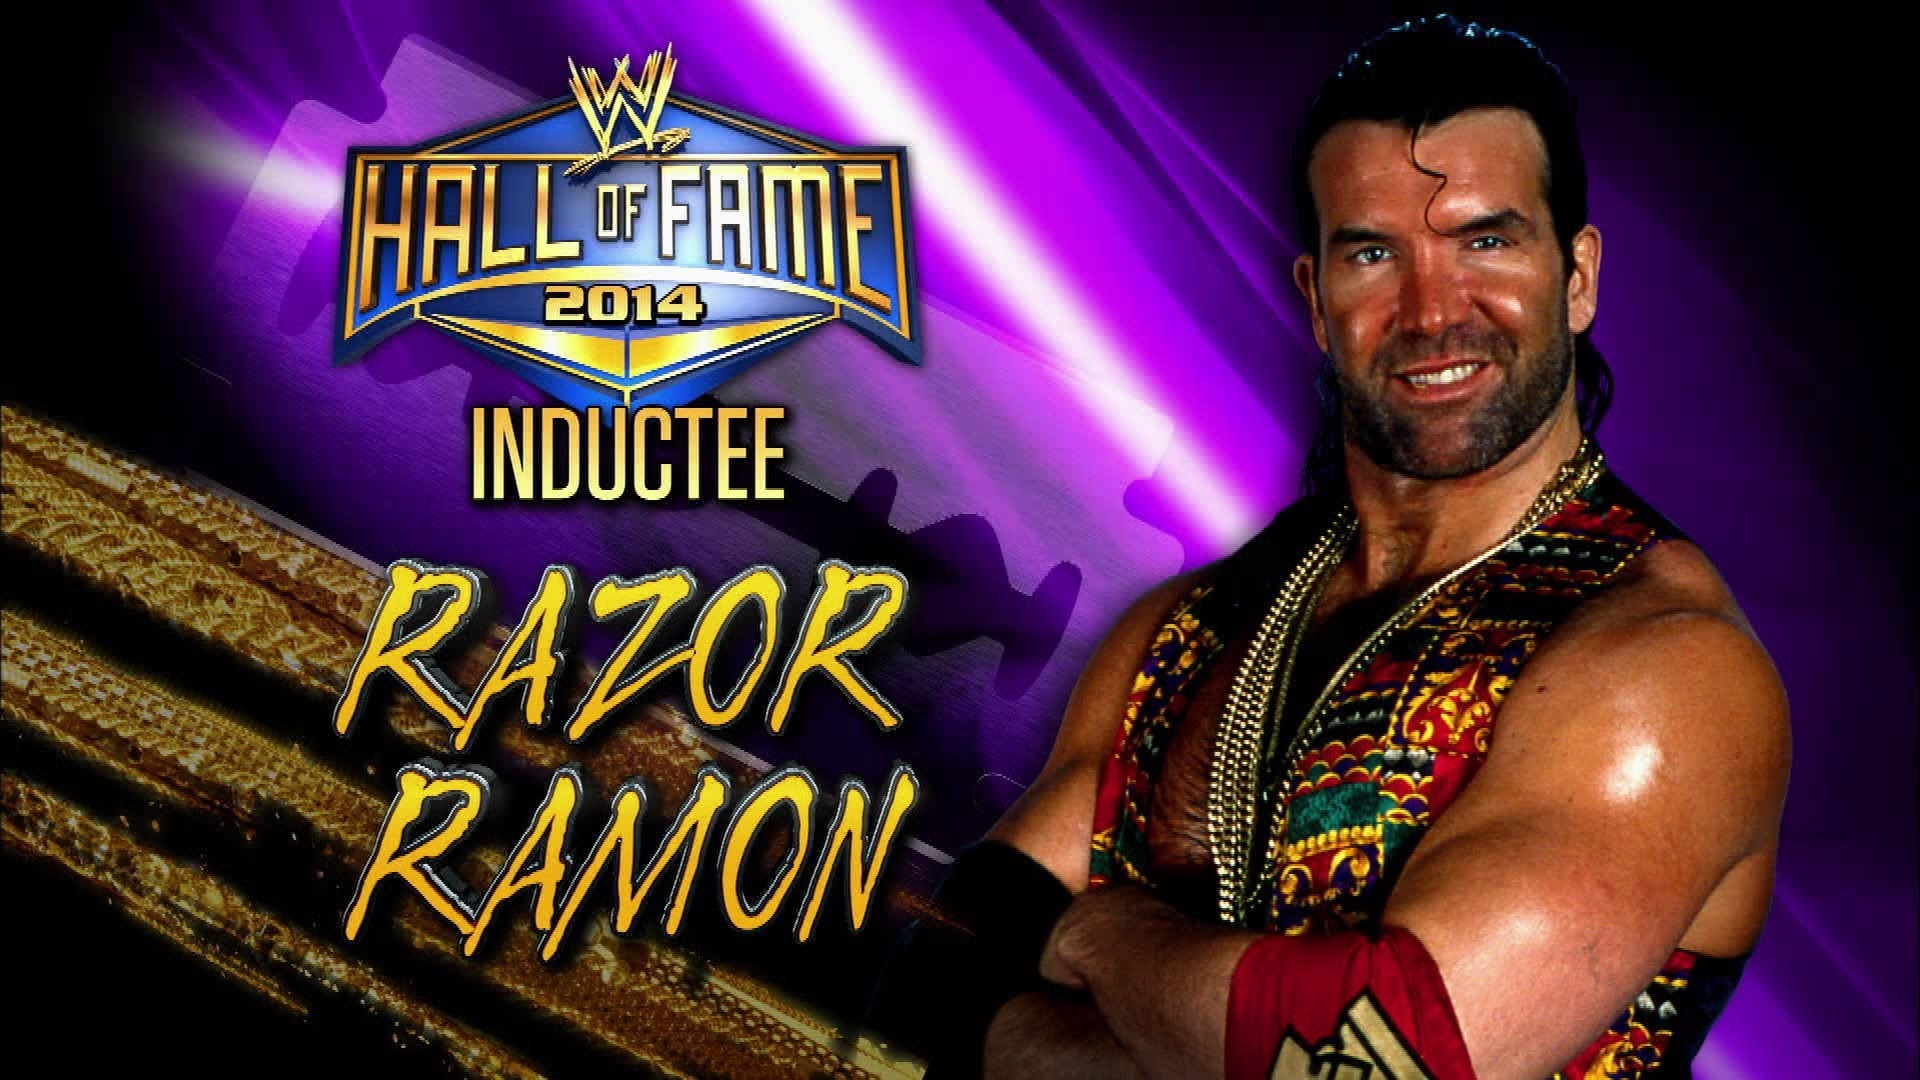 razor ramon free wwe wallpaper